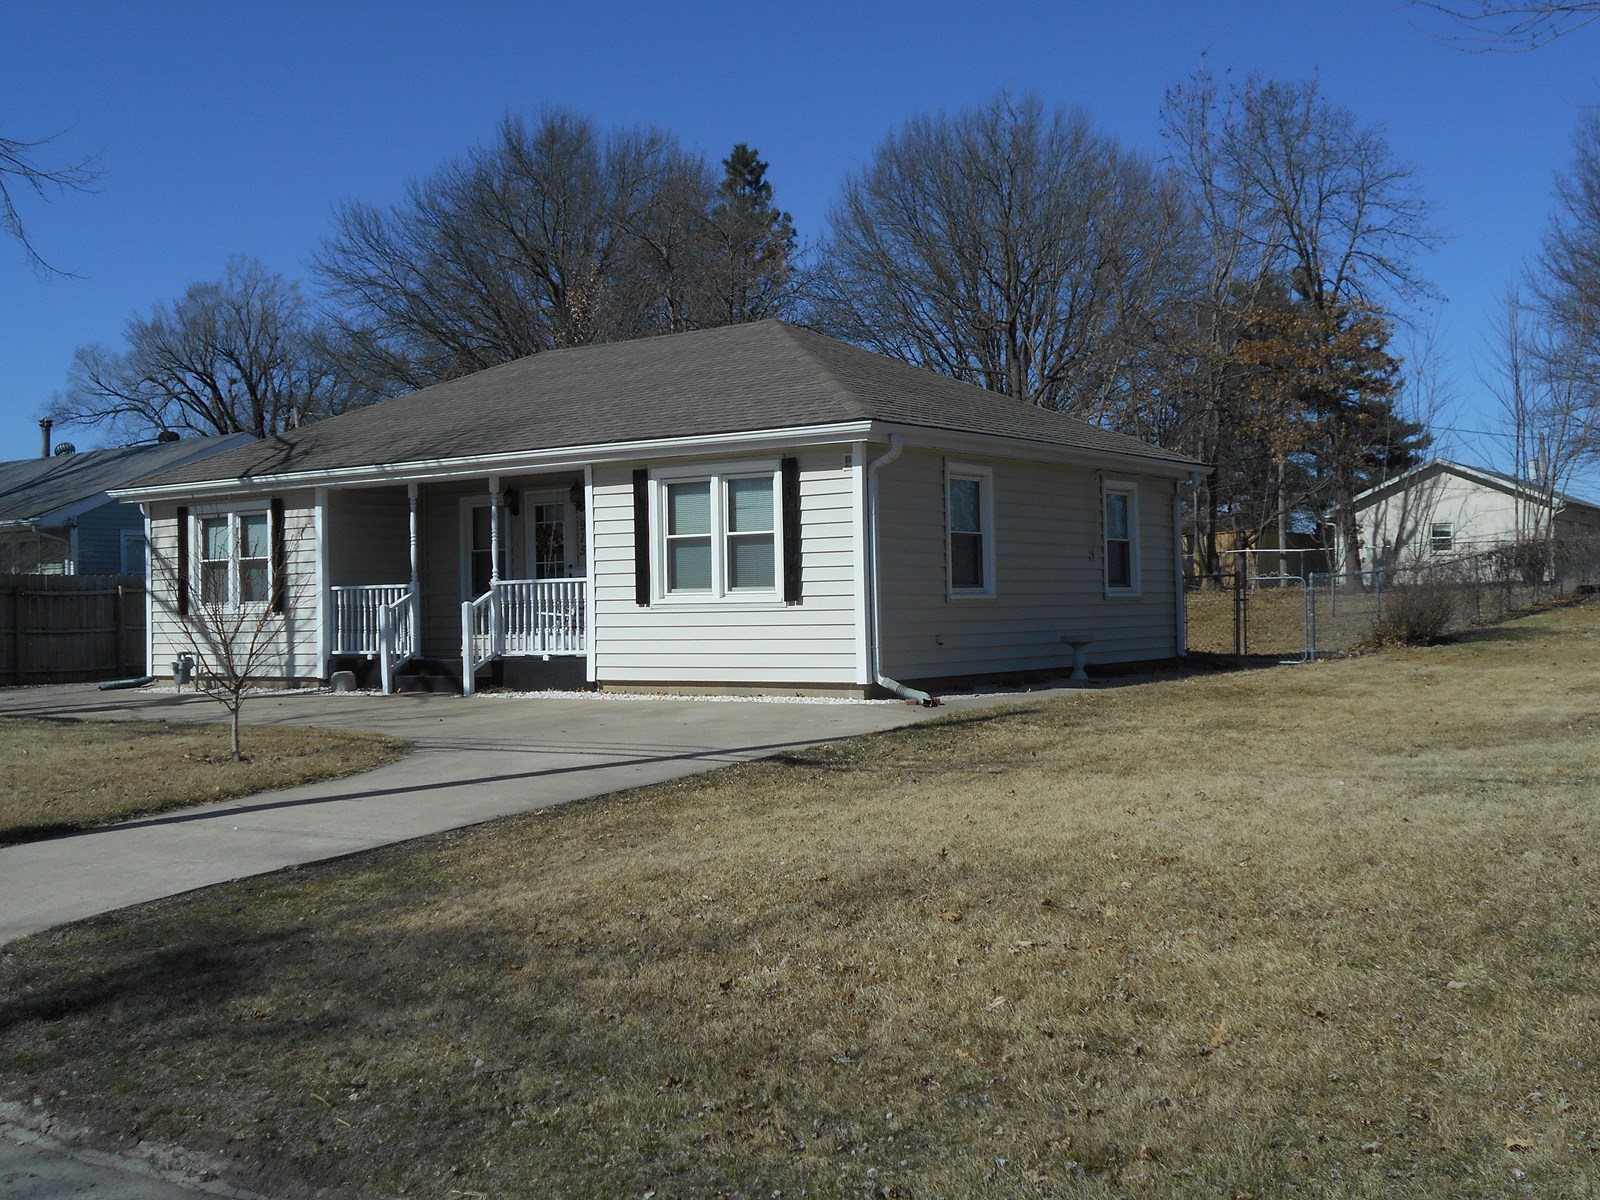 2 BEDROOM AFFORDABLE CAMERON MO RANCH FOR SALE